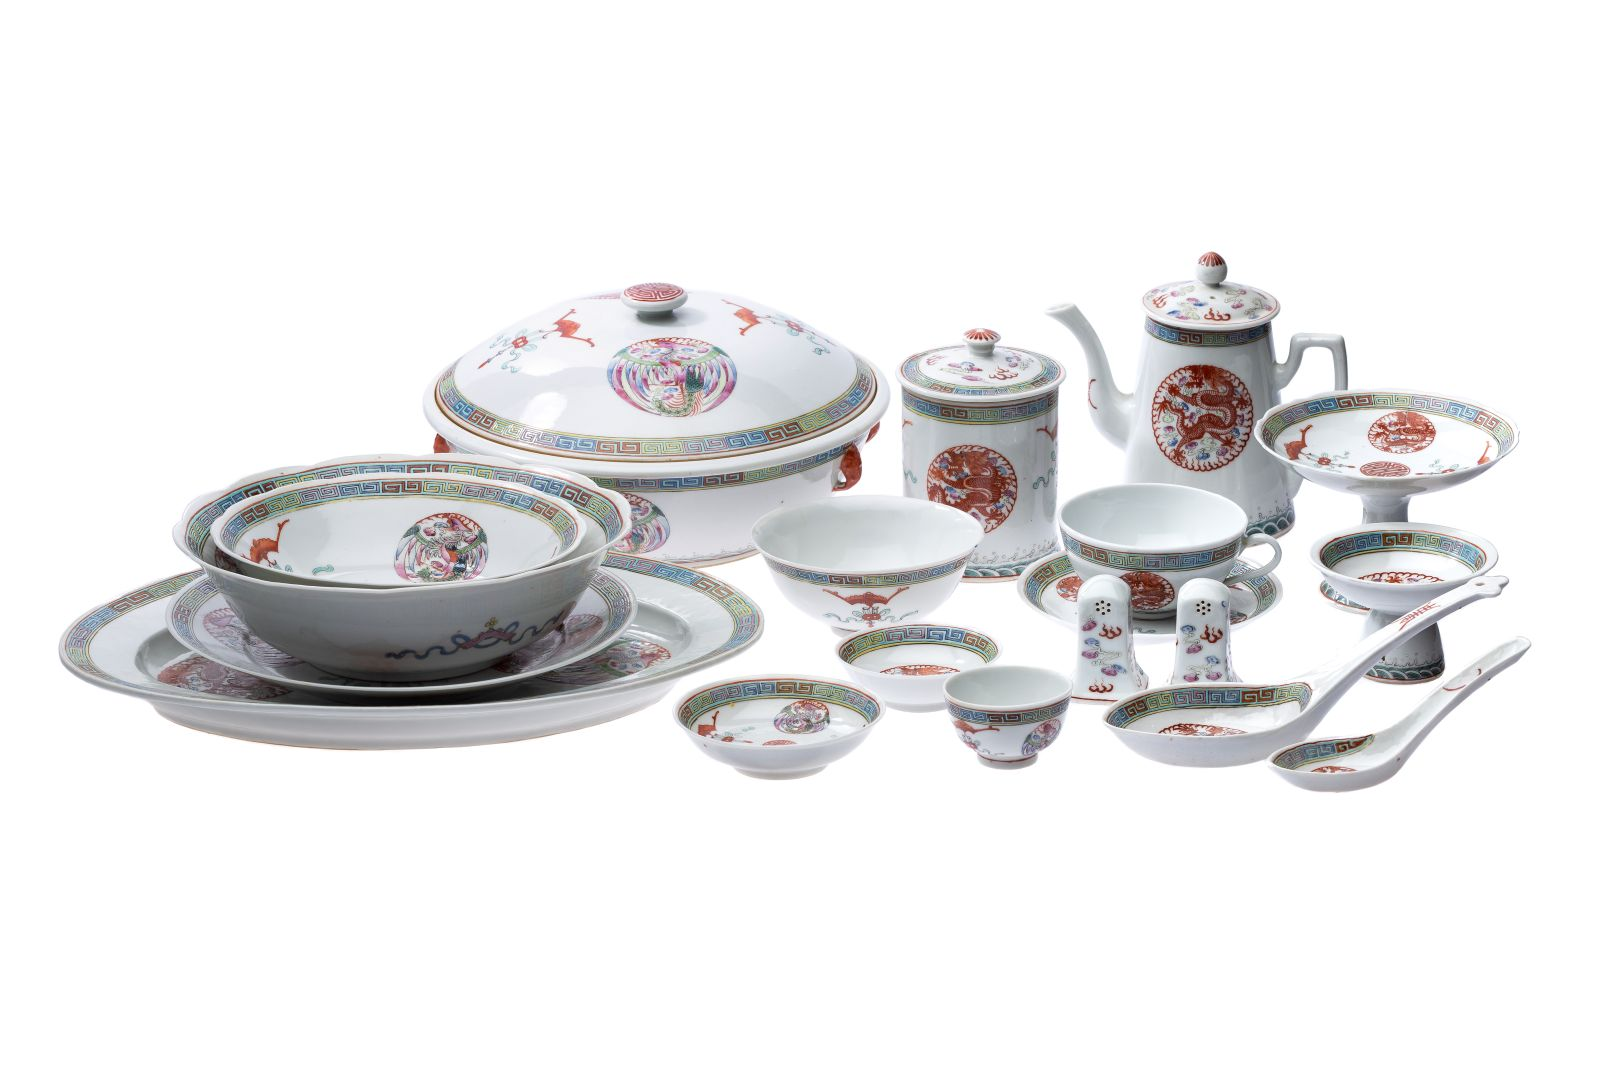 #20 Chinese tea, coffee and dinner service | Chinesisches Tee- Kaffee- und Tafelservice Image